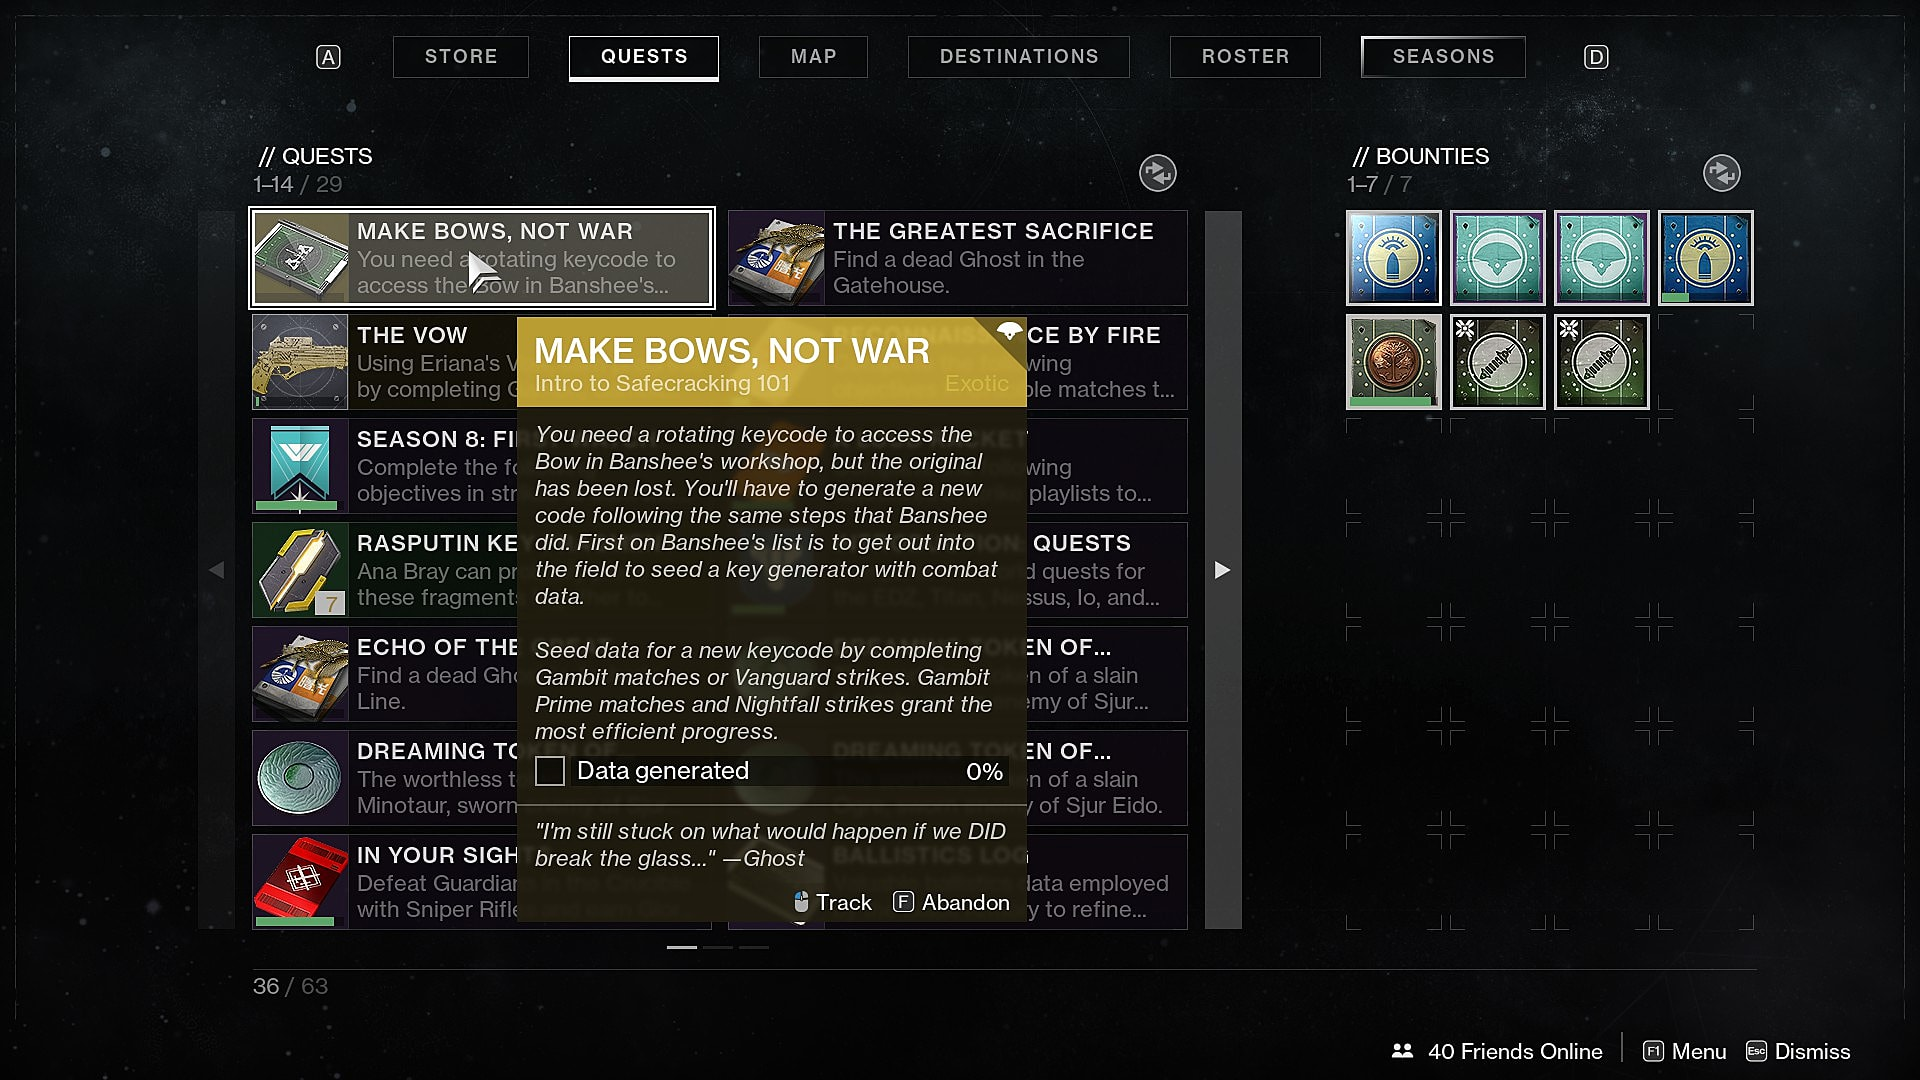 How to Complete the Make Bows, Not War Quest in Destiny 2